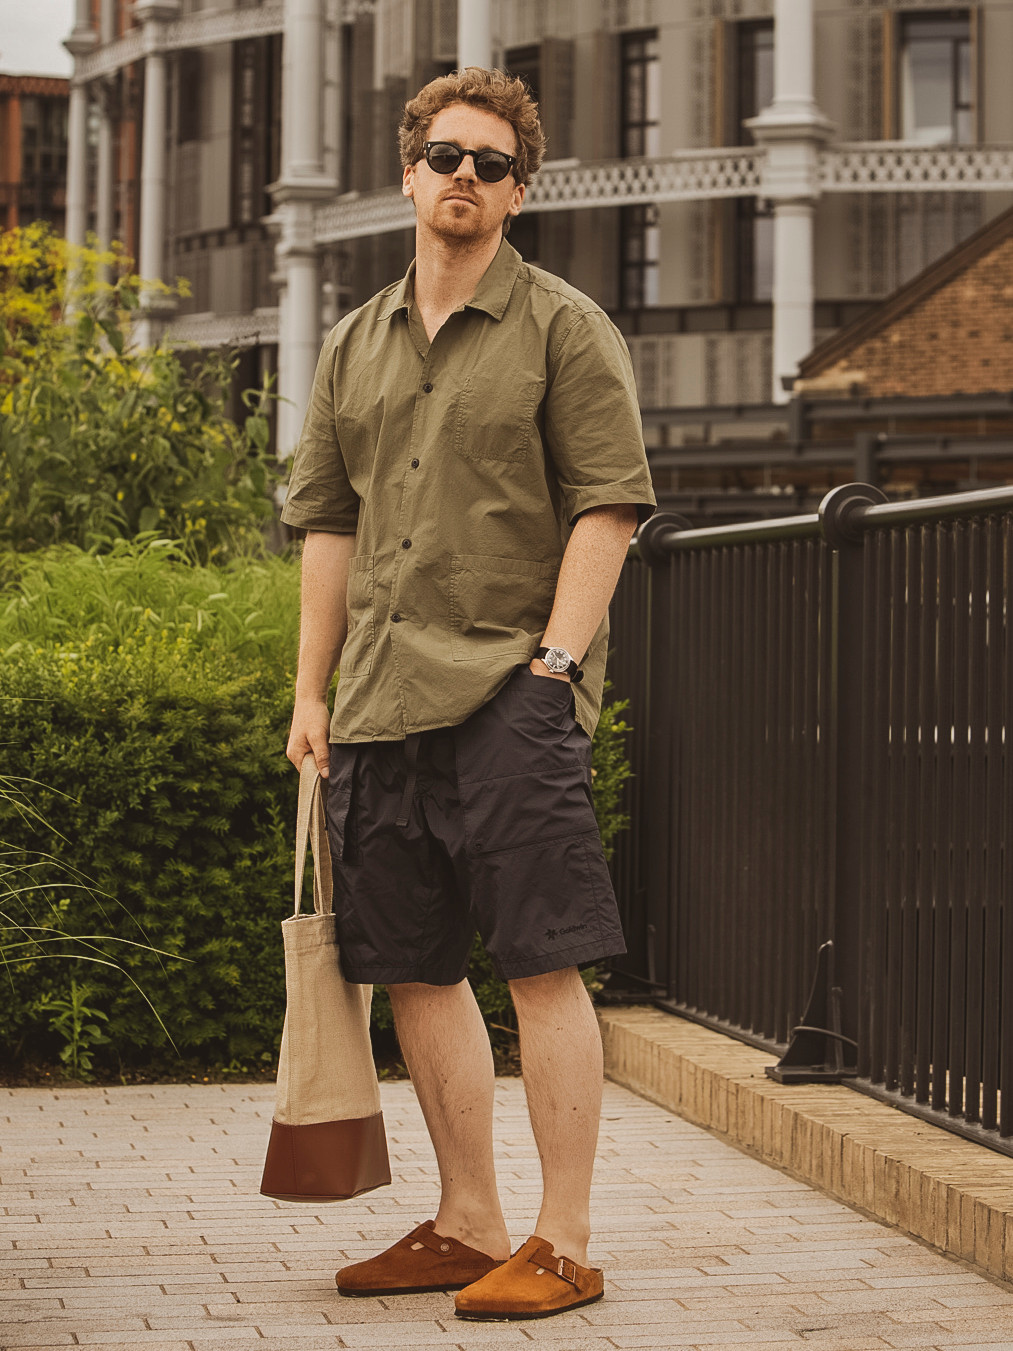 Men's outfit idea for 2021 with green short-sleeved plain shirt, brown cargo shorts. Suitable for spring and summer.